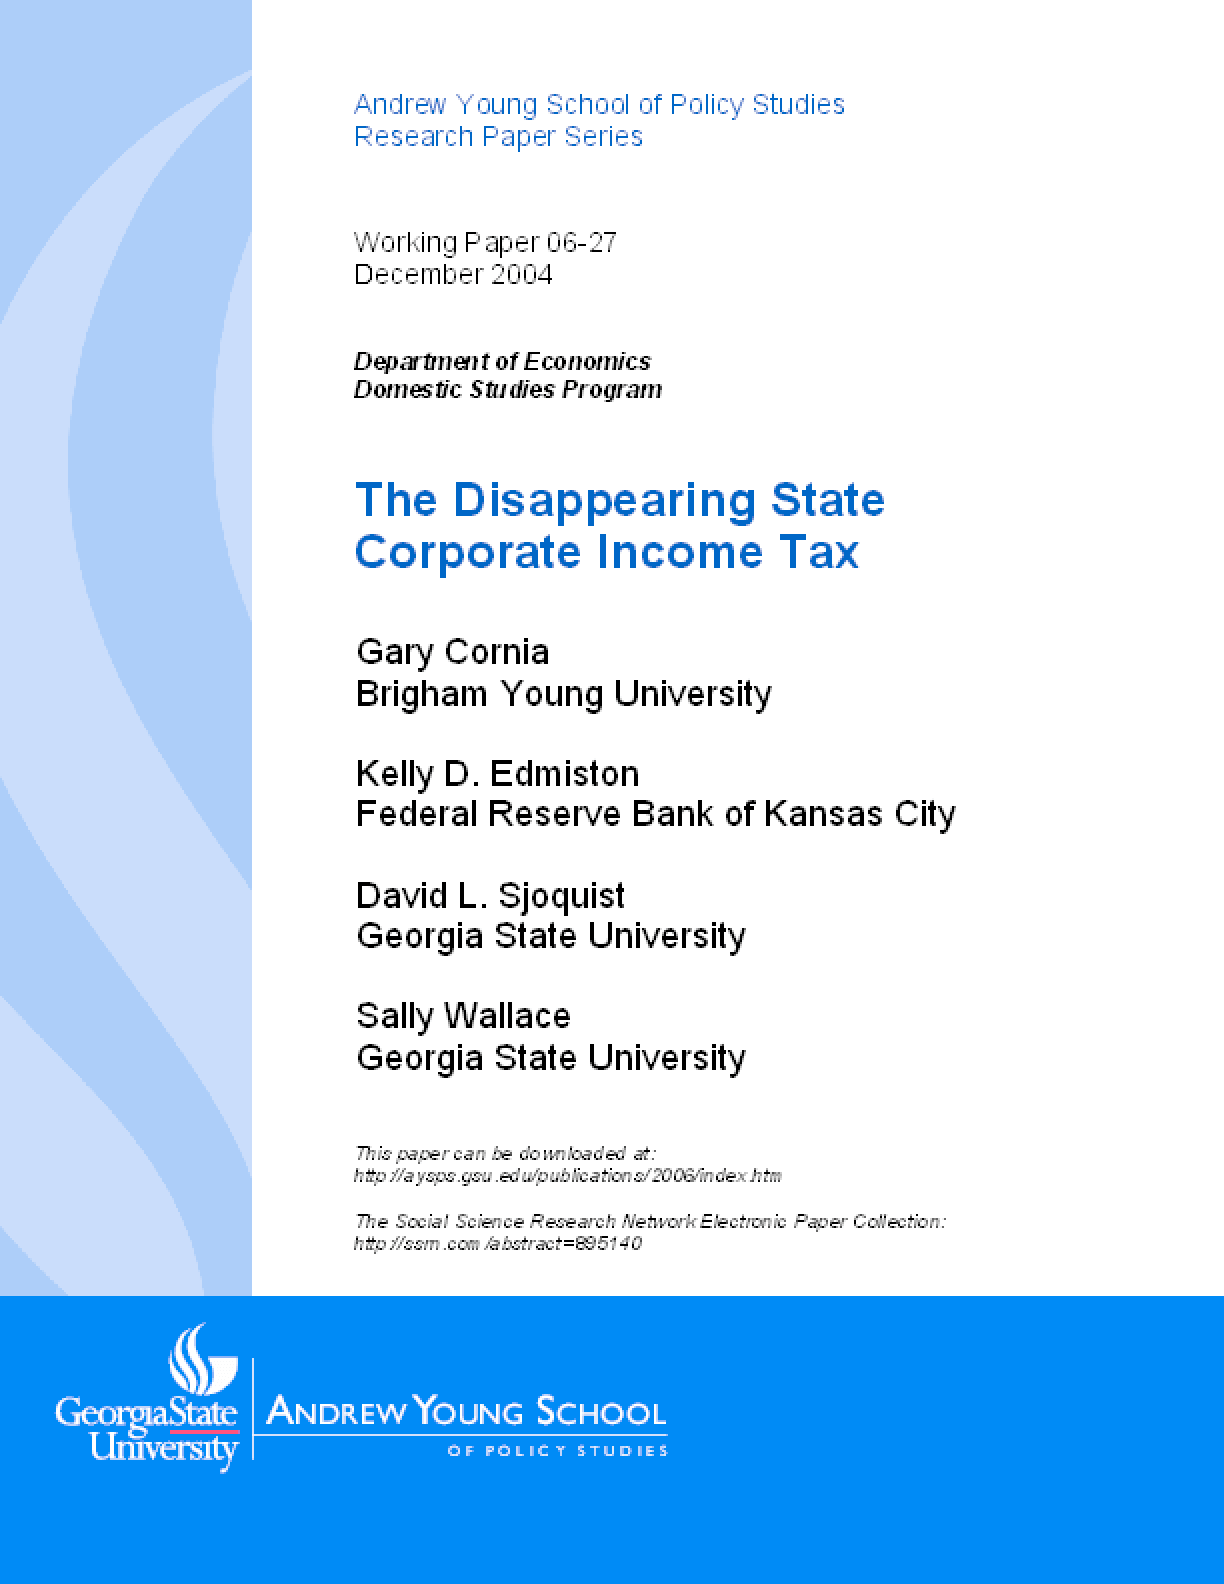 The Disappearing State Corporate Income Tax